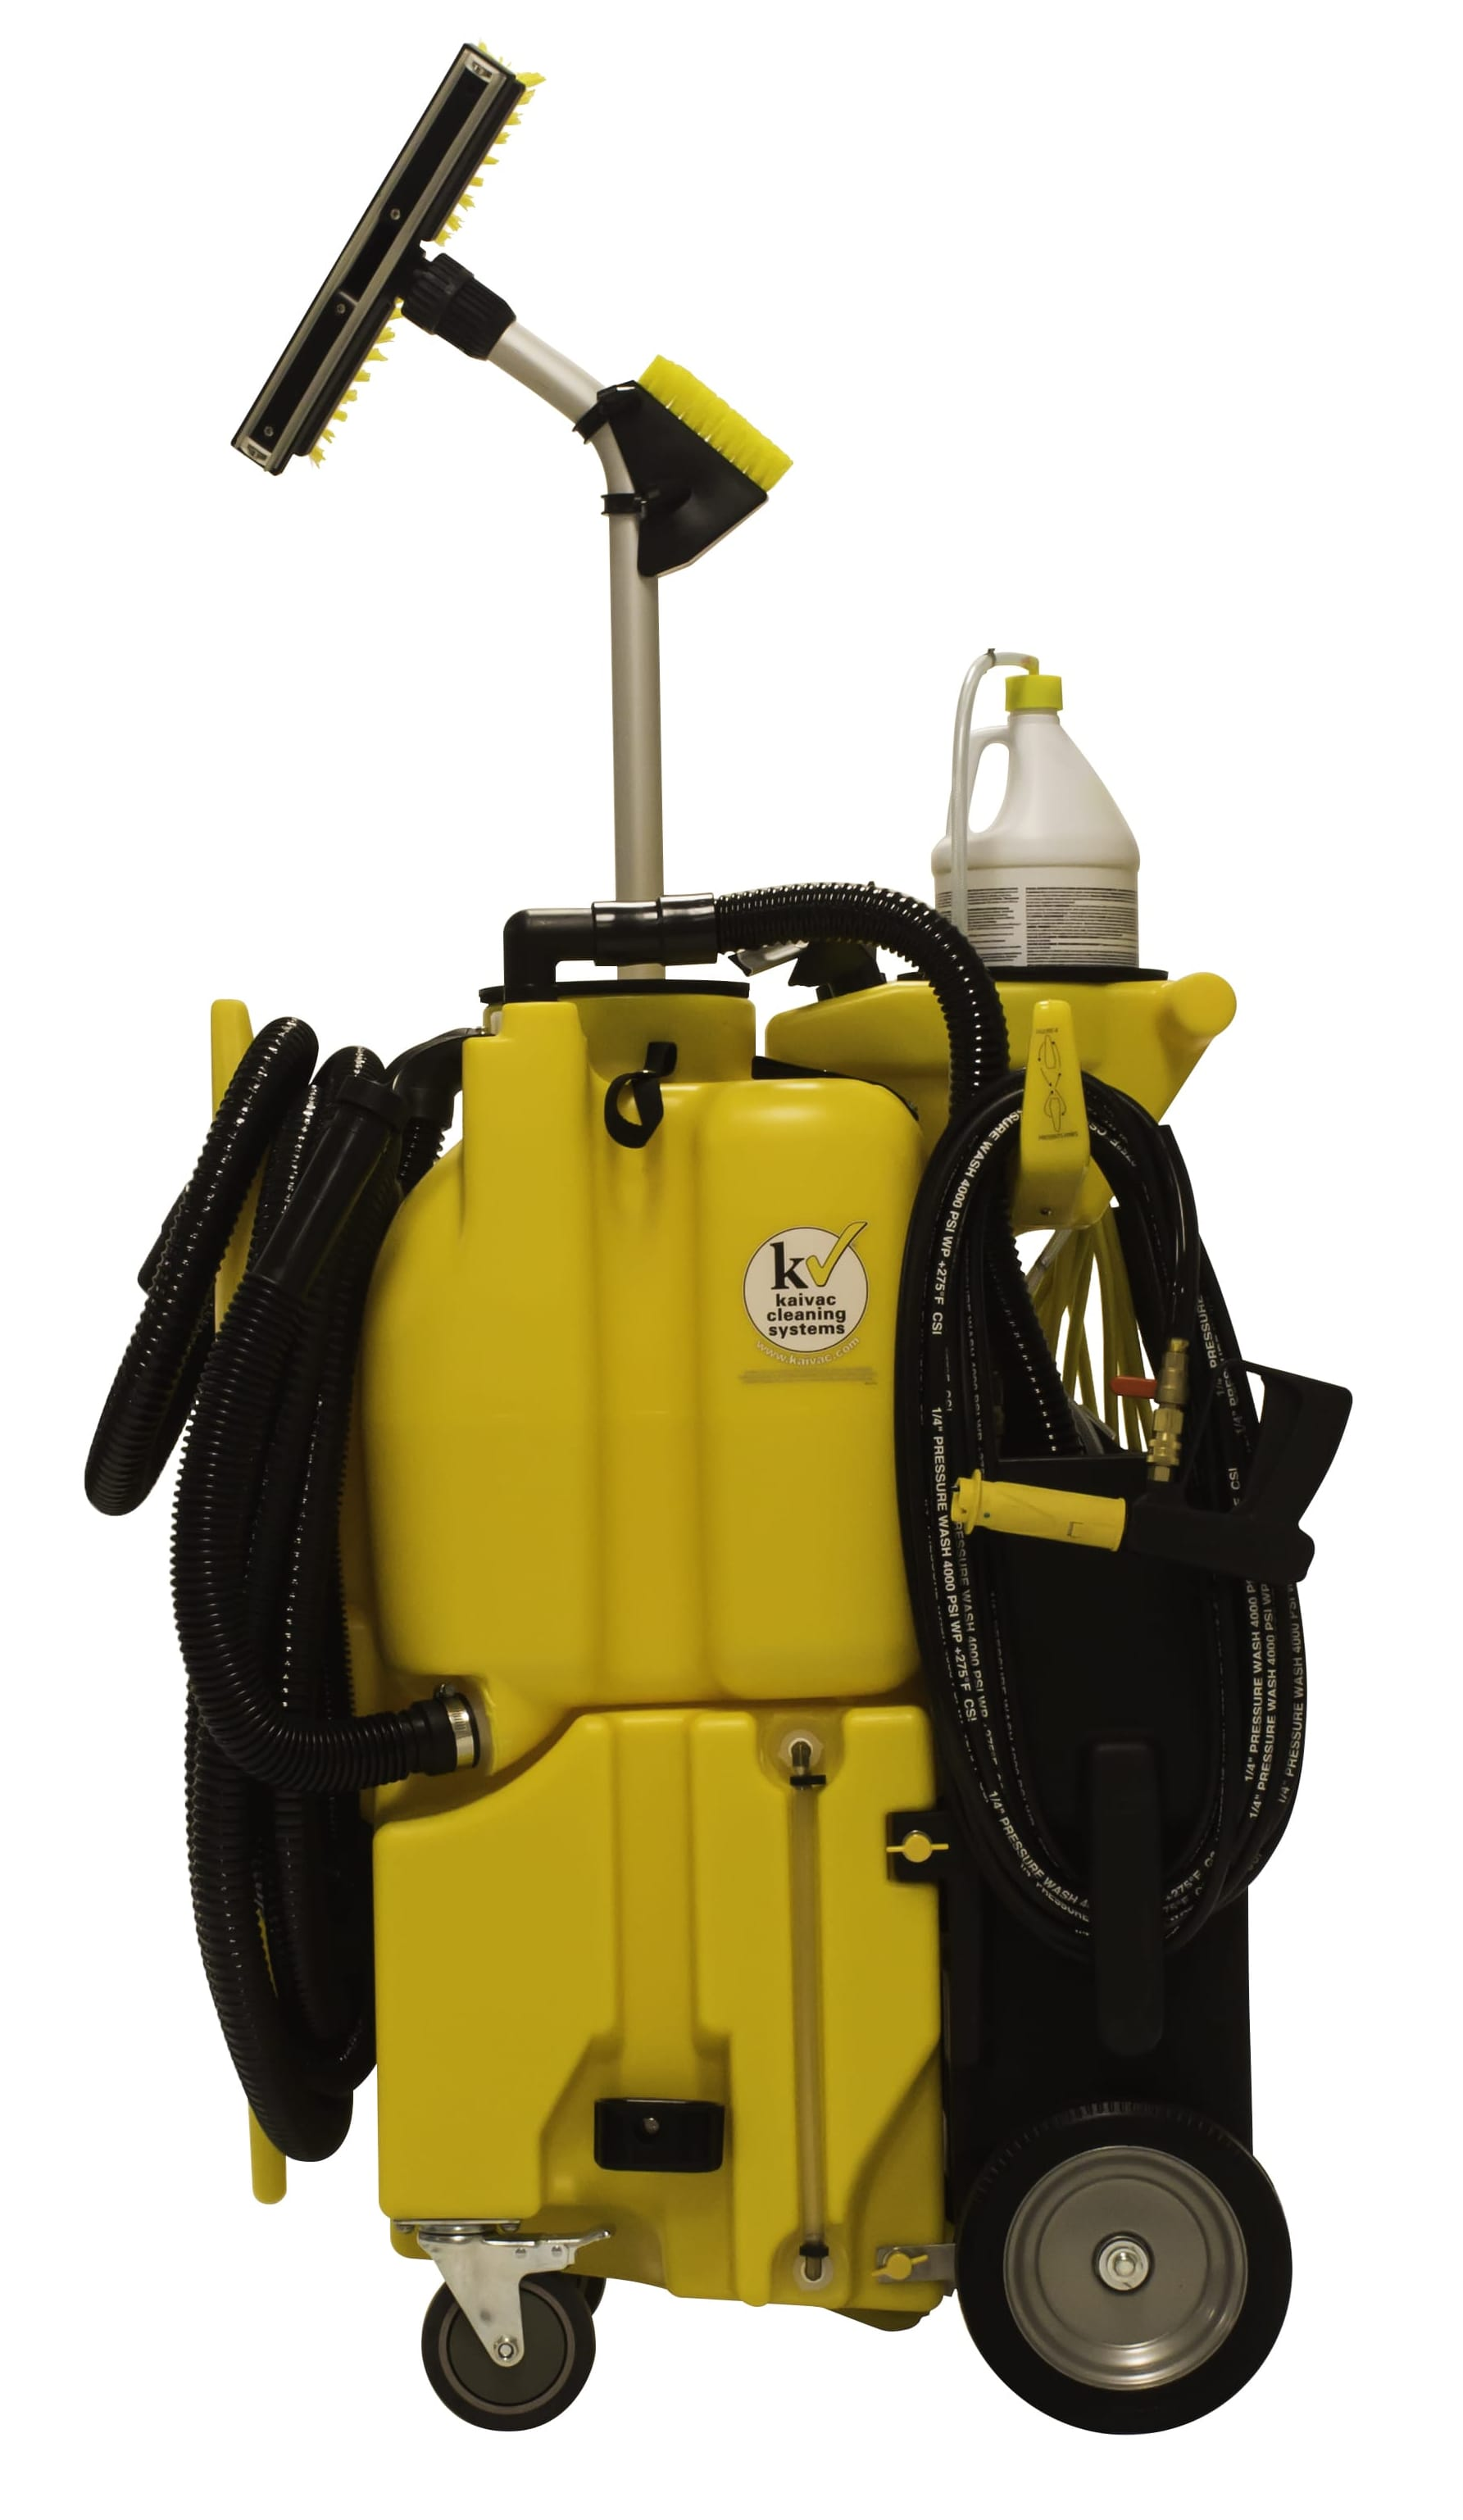 KaiVac 1750 No-Touch Cleaning System - Kaivac Cleaning Systems